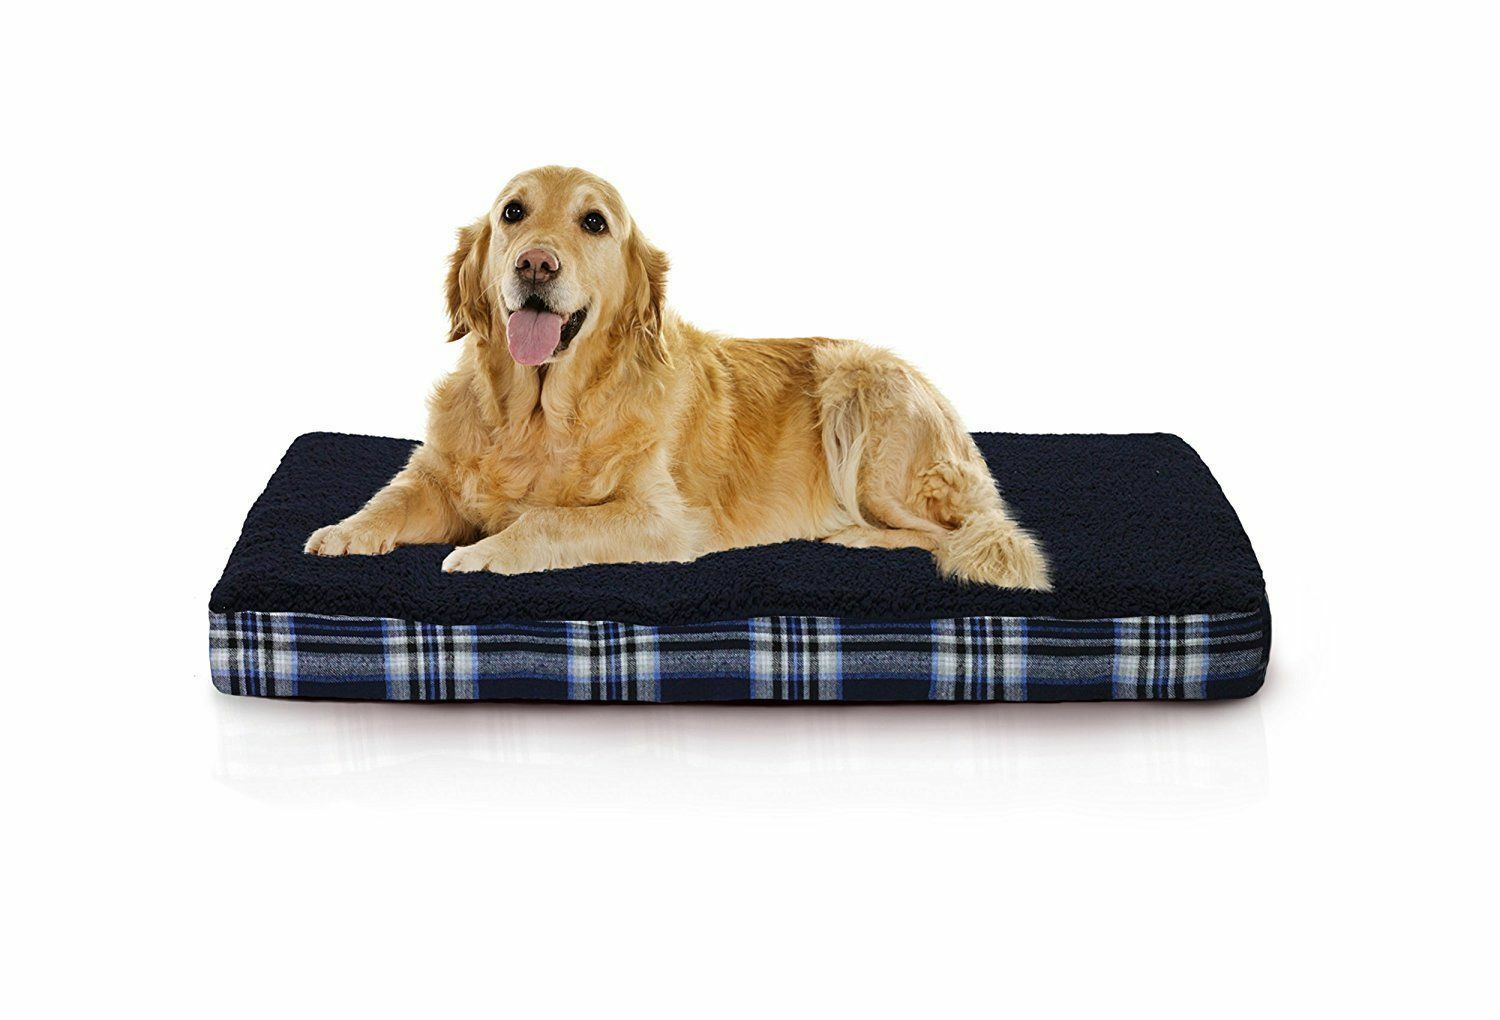 Furhaven Pet Products NAP Terry and Plaid Deluxe Memory Foam Pet Bed